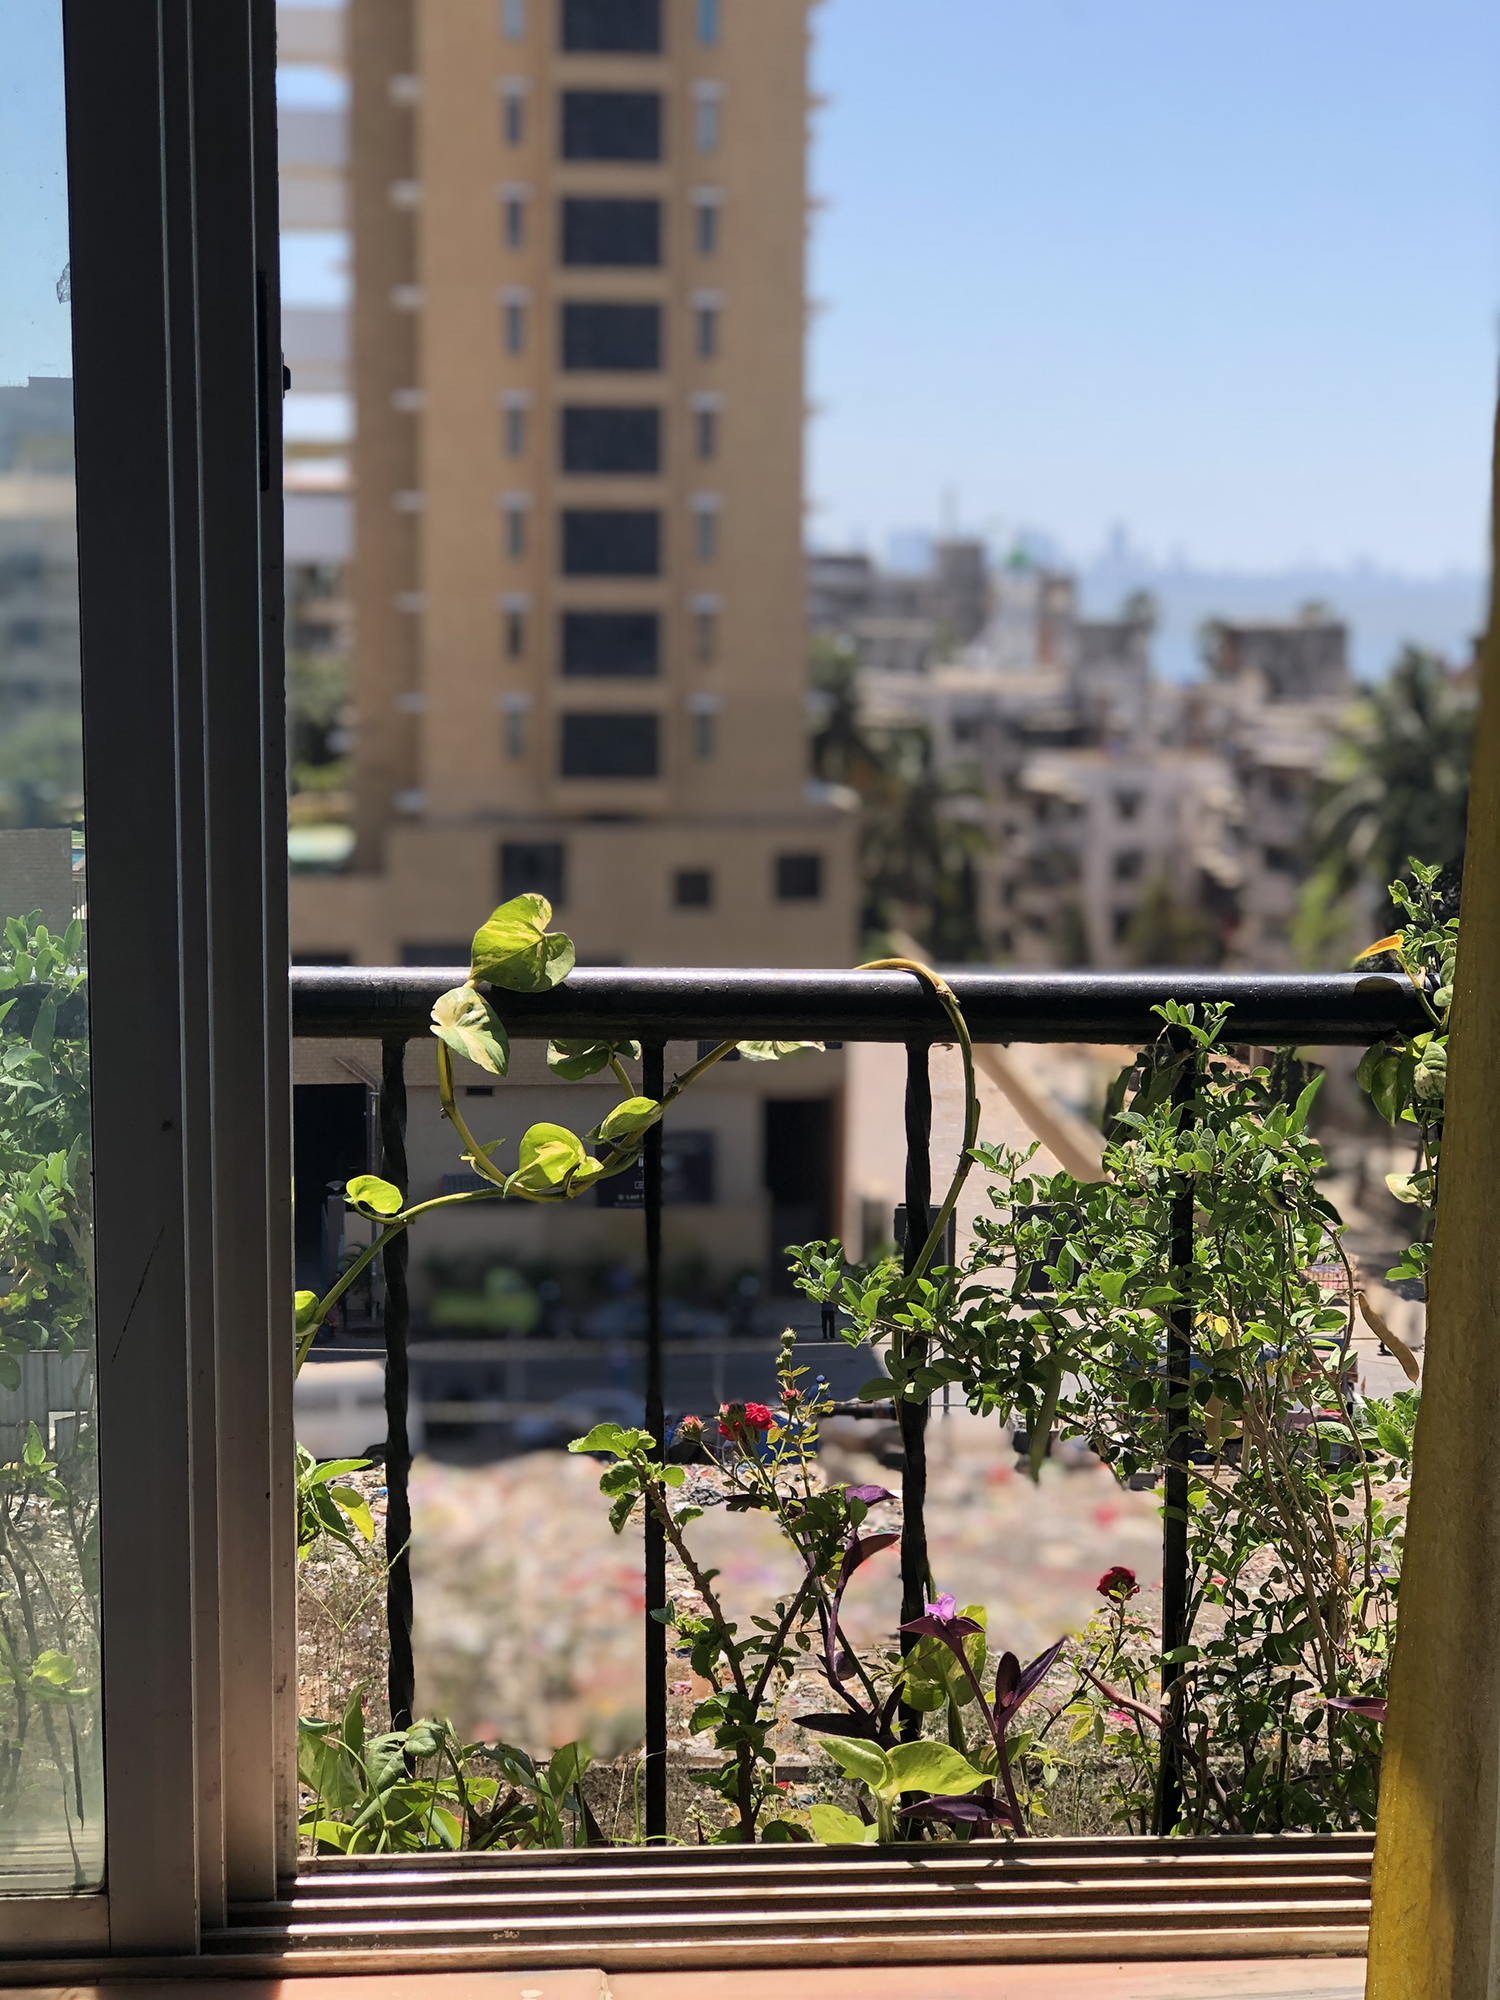 the flowers bloom and frame the cityscape, in comfort and solace.